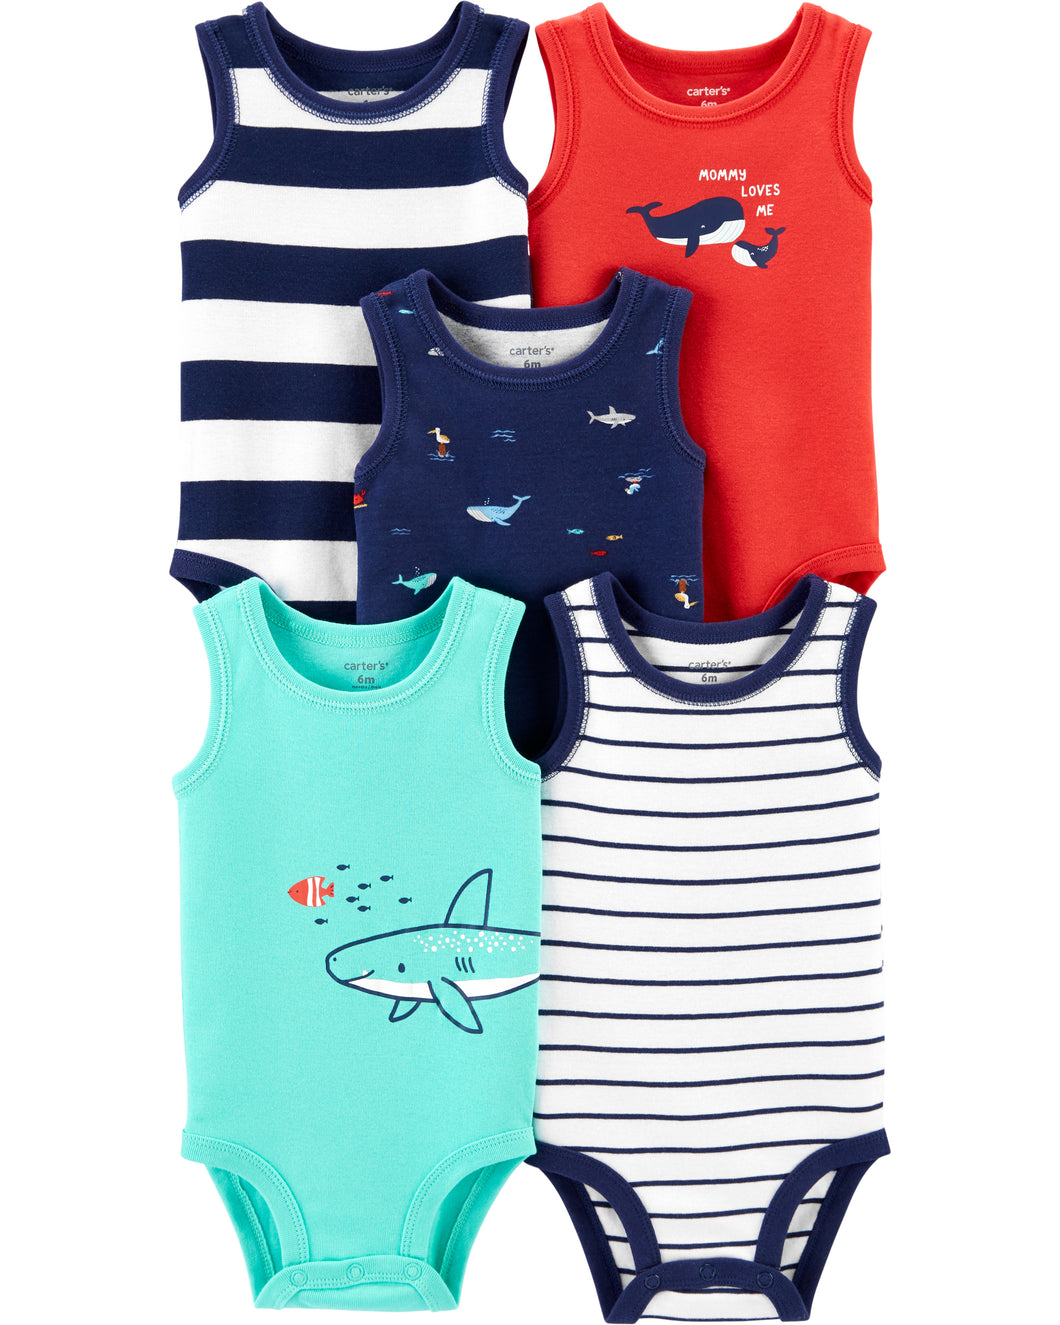 CABY167 Carter's Baby Boys 5-Pack Whale Tank Bodysuits